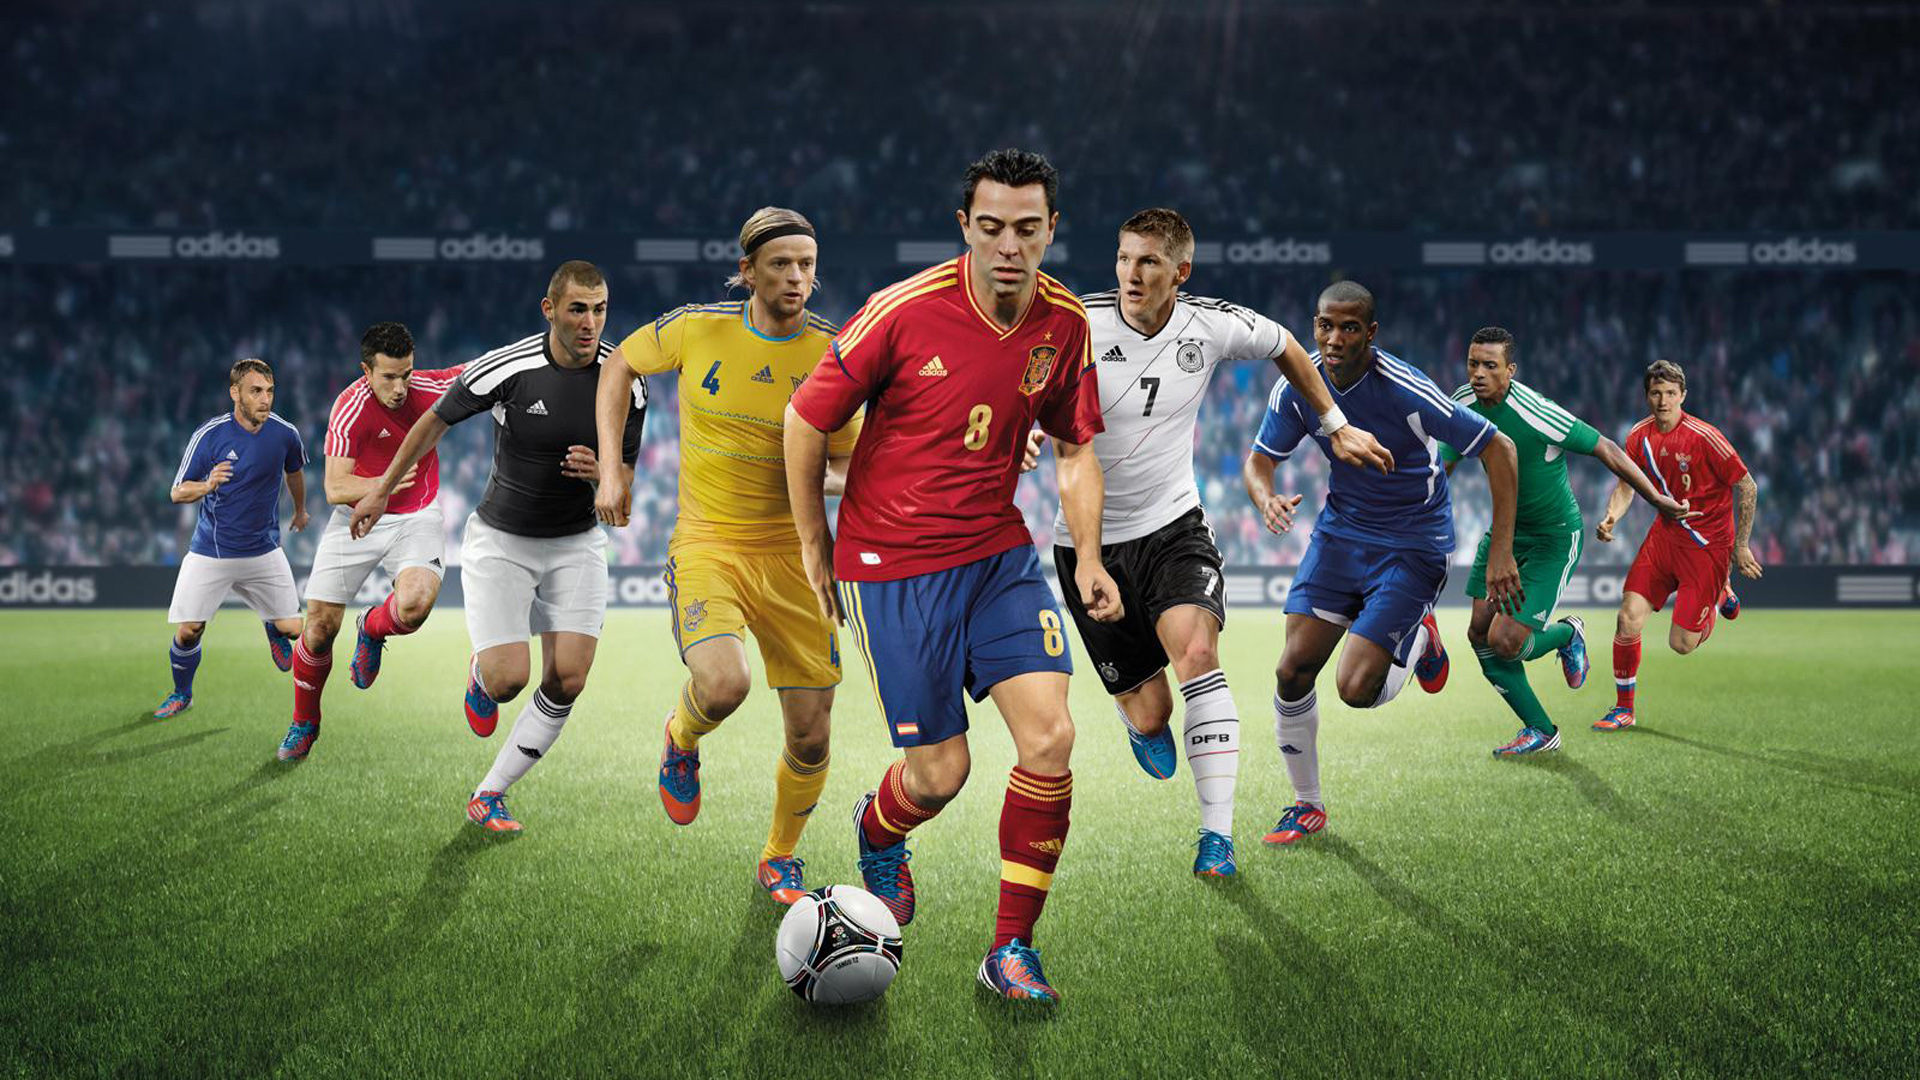 Download Football Players Are Trying To Hit A Ball Hd Football